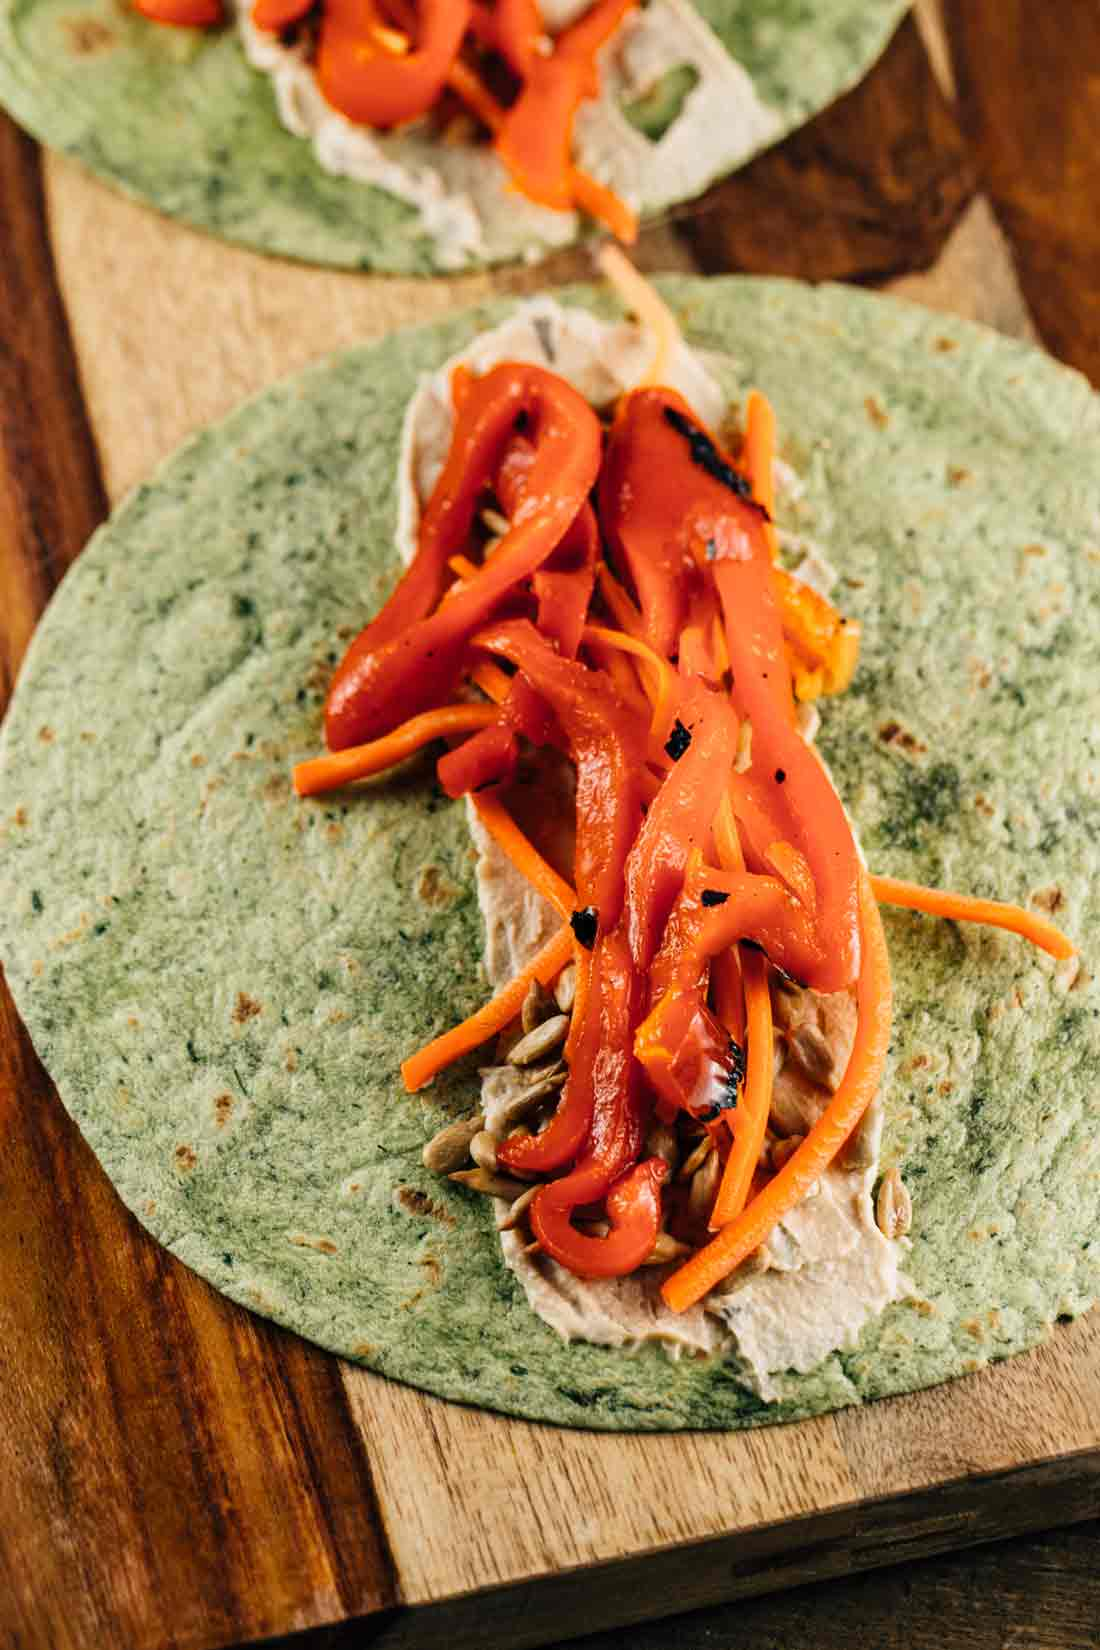 A spinach tortilla, with a layer of hummus, sunflower seeds, and roasted red peppers.